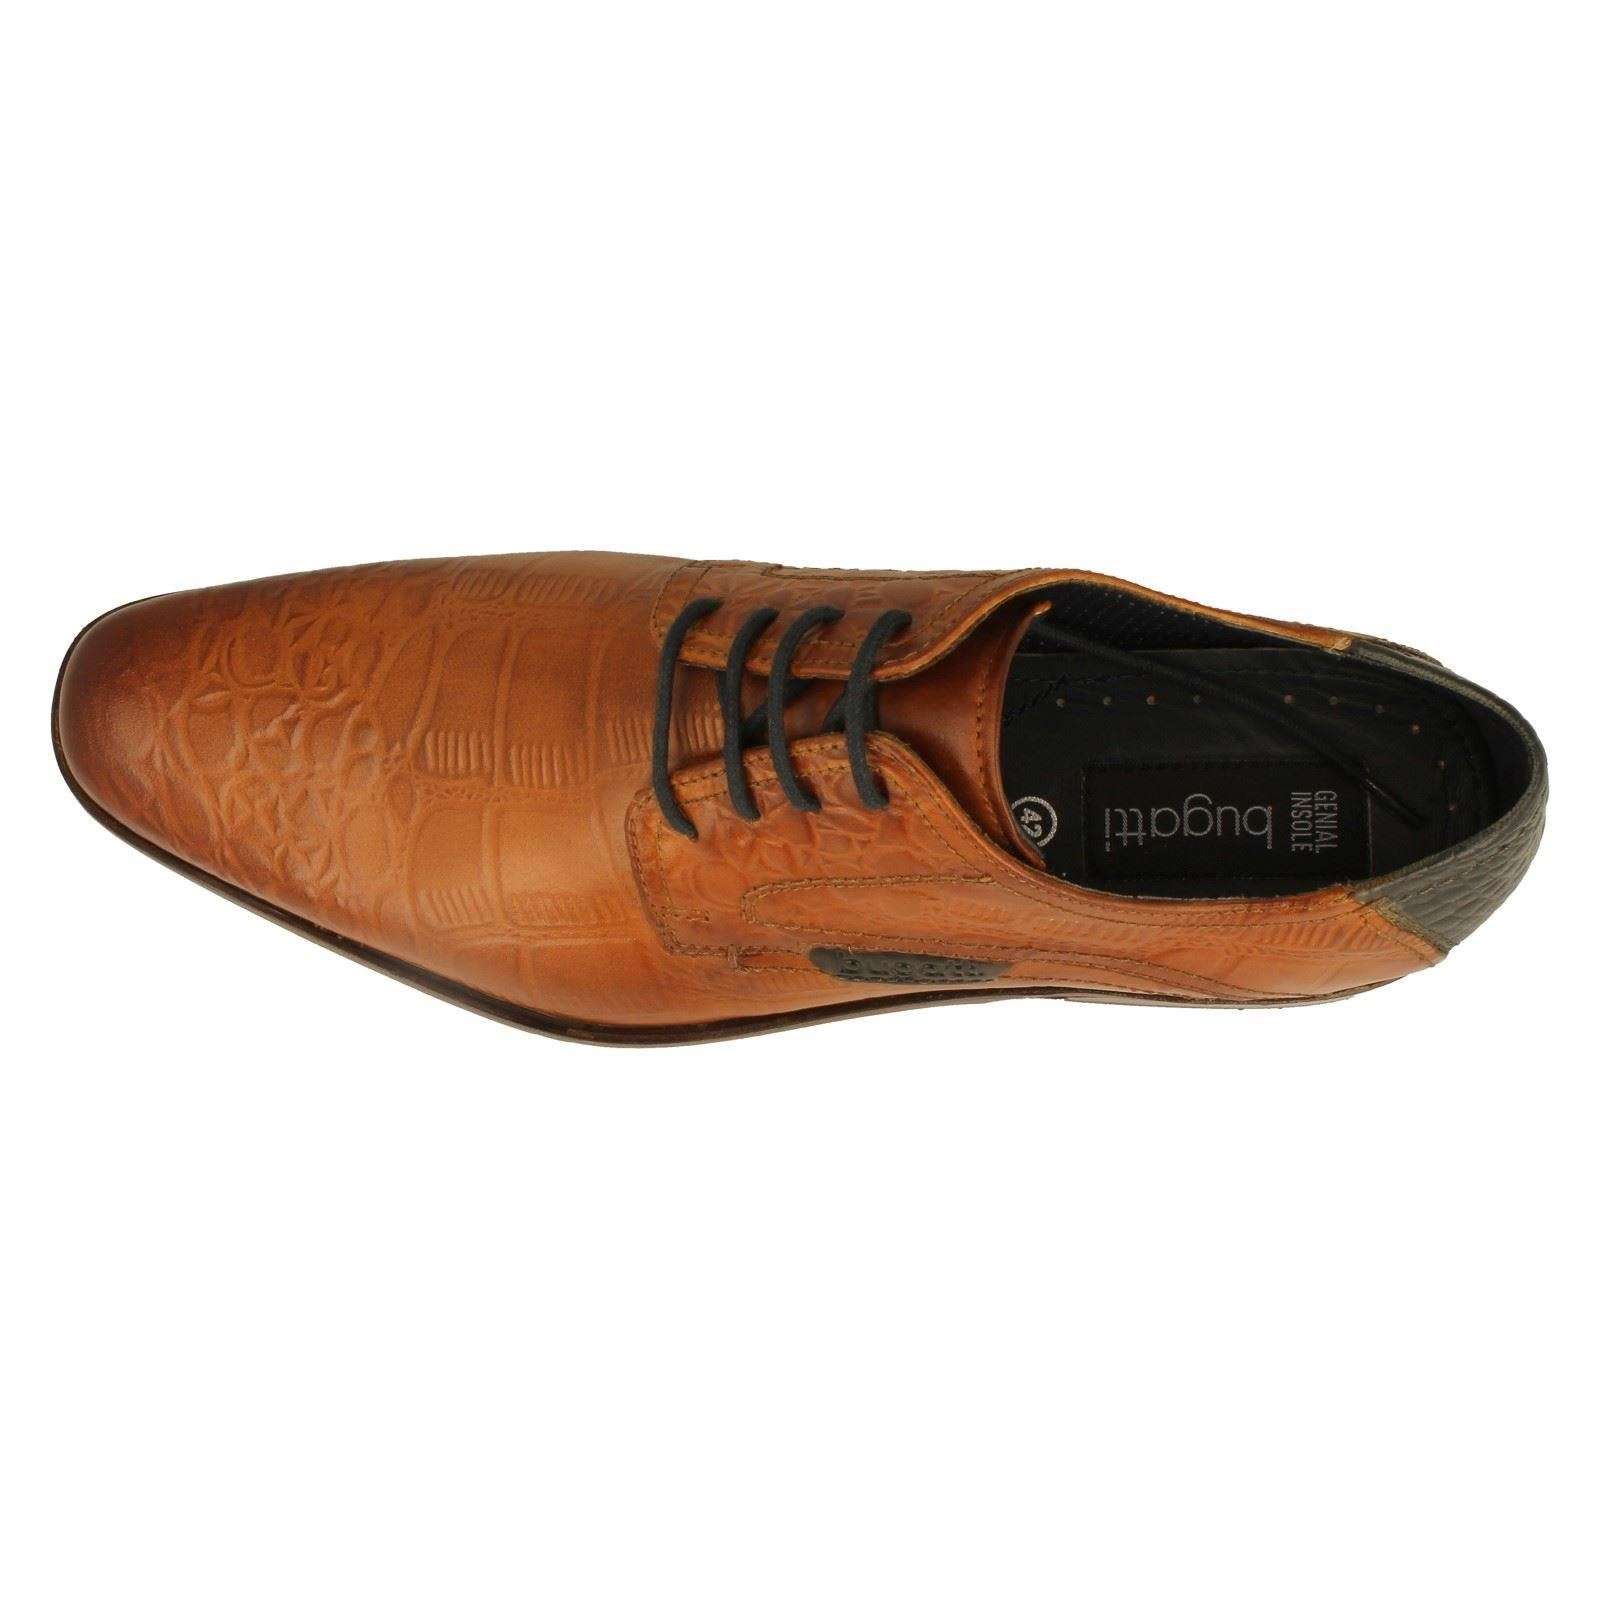 15601 w Formal 311 Cognac Shoes 1118 Mens Bugatti 4wYSwqI